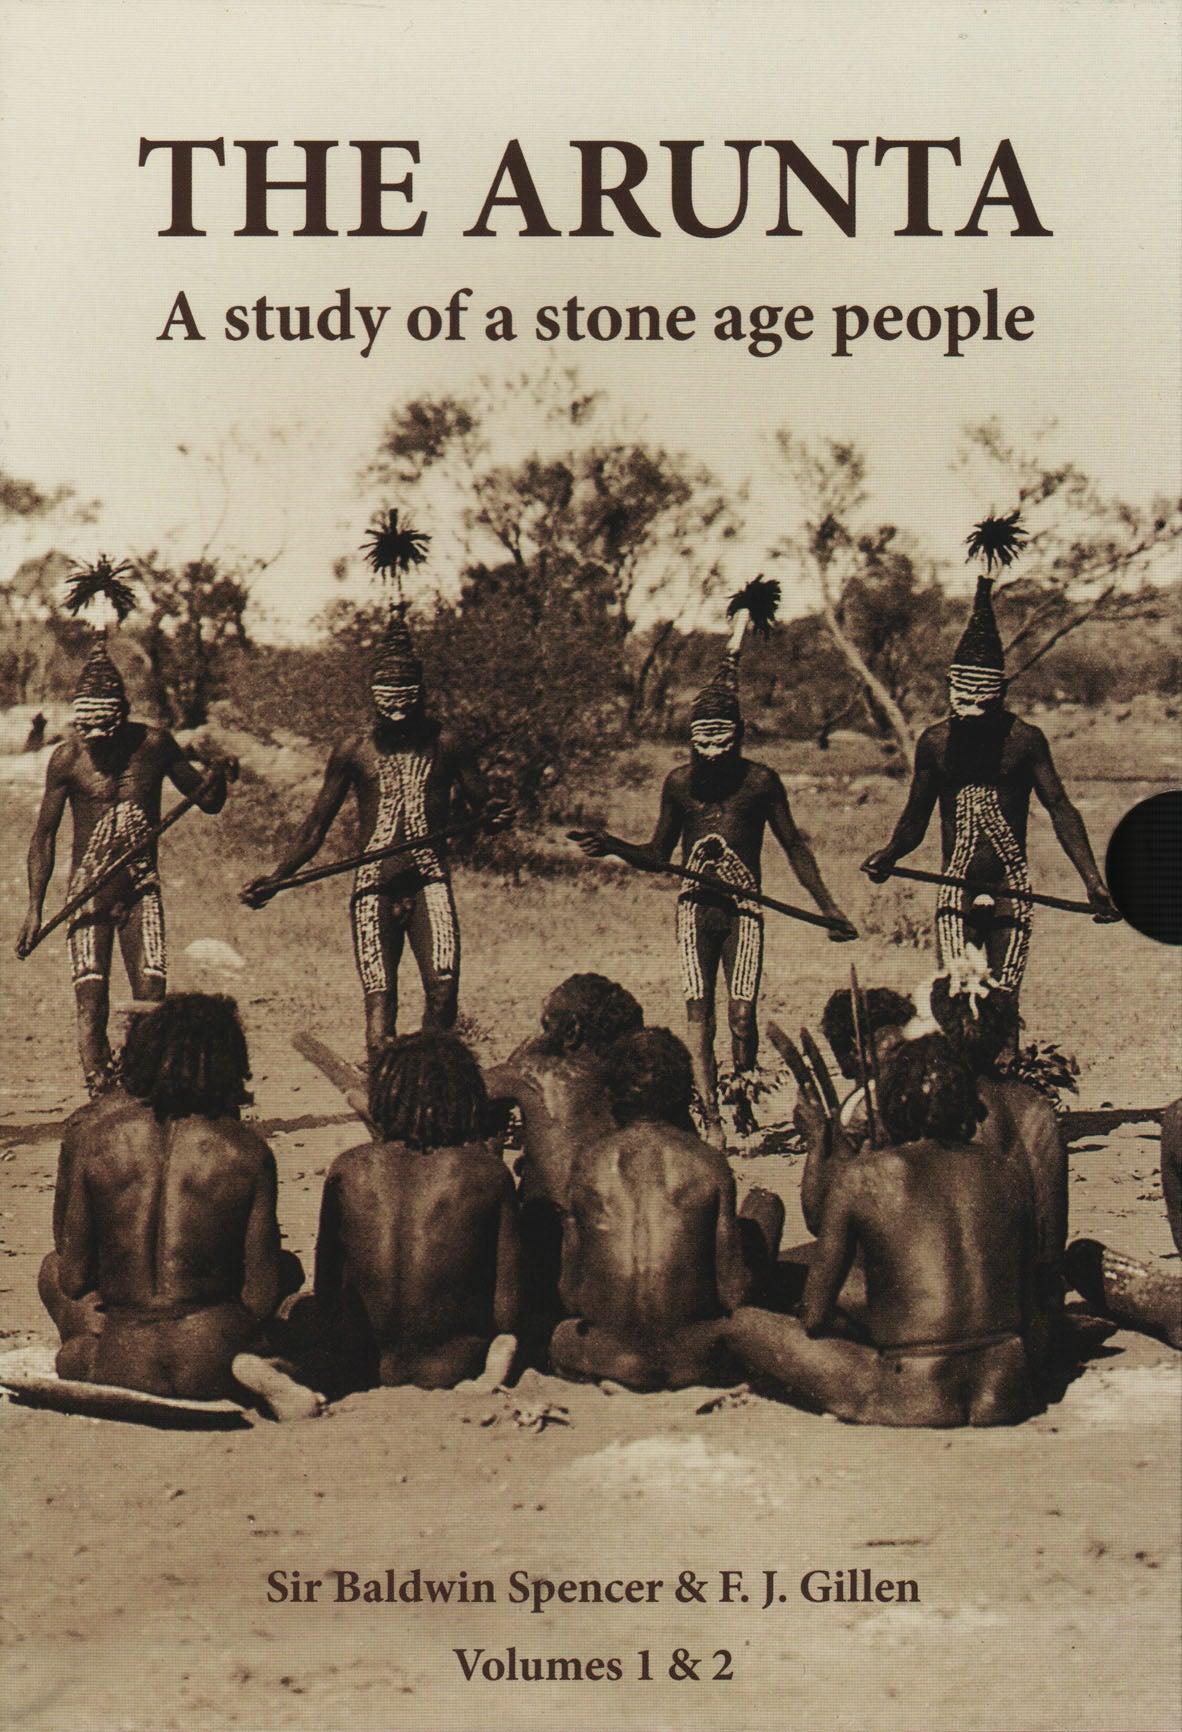 Arunta: A Study of a Stone Age People